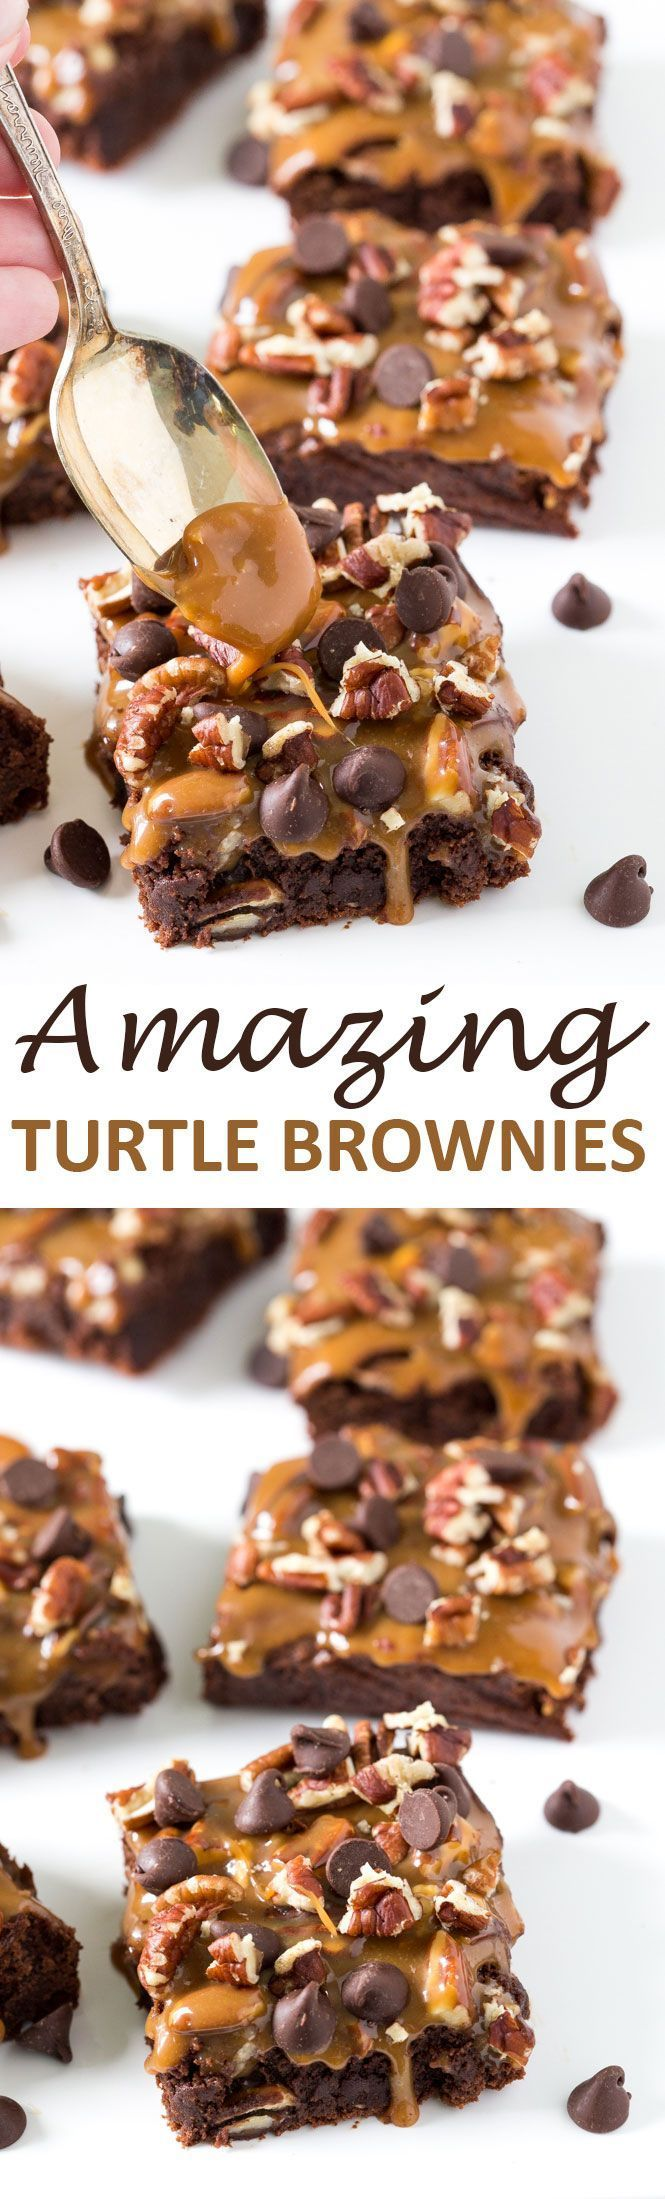 The BEST Easy Turtle Brownies Recipe! - Chef Savvy